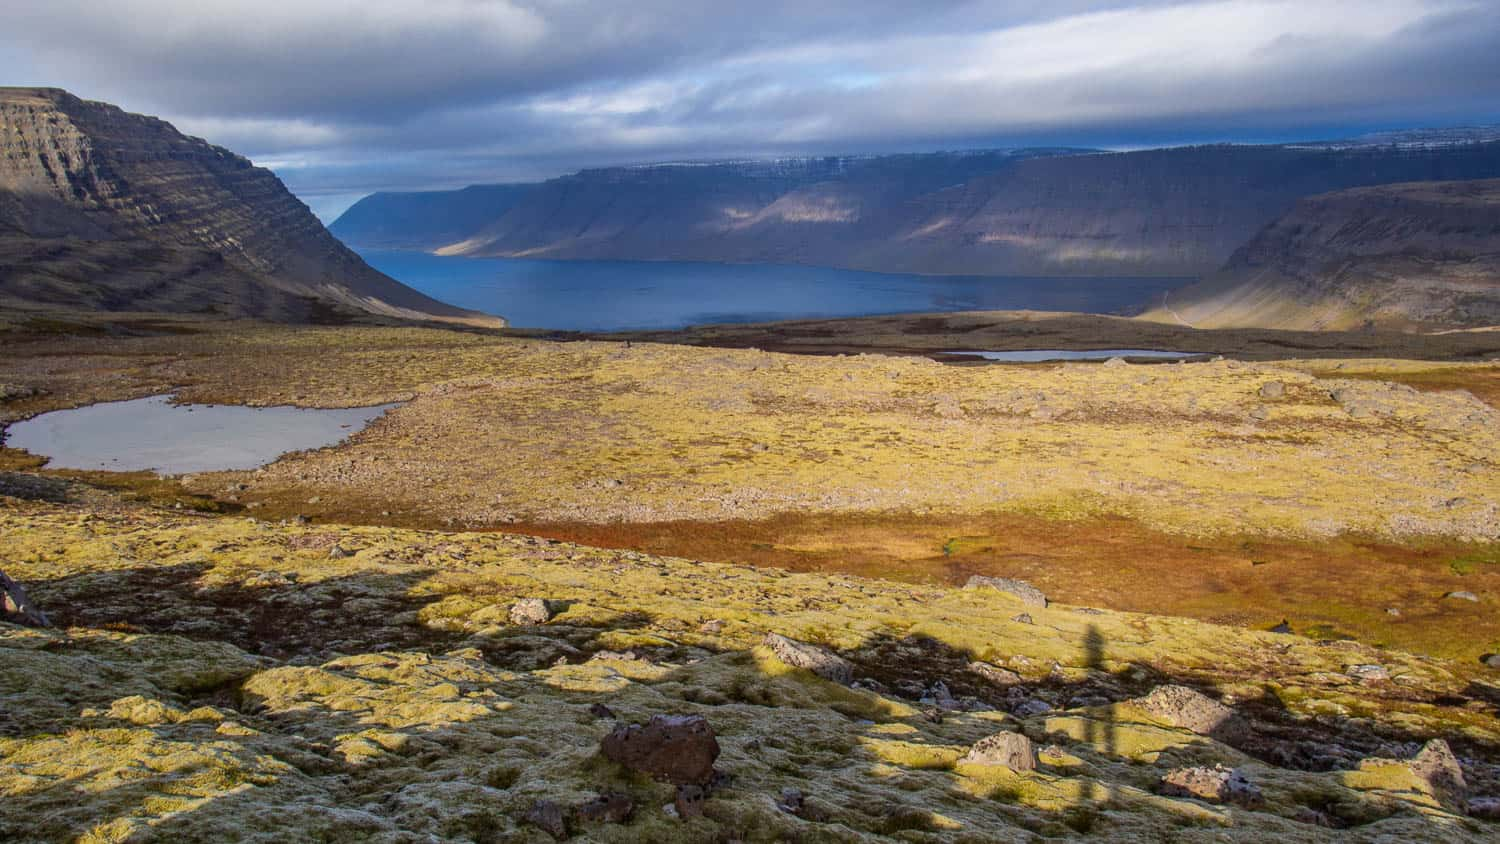 Planning a trip to Iceland - the best Iceland travel tips to help you make the most of your trip and travel safely and responsibly